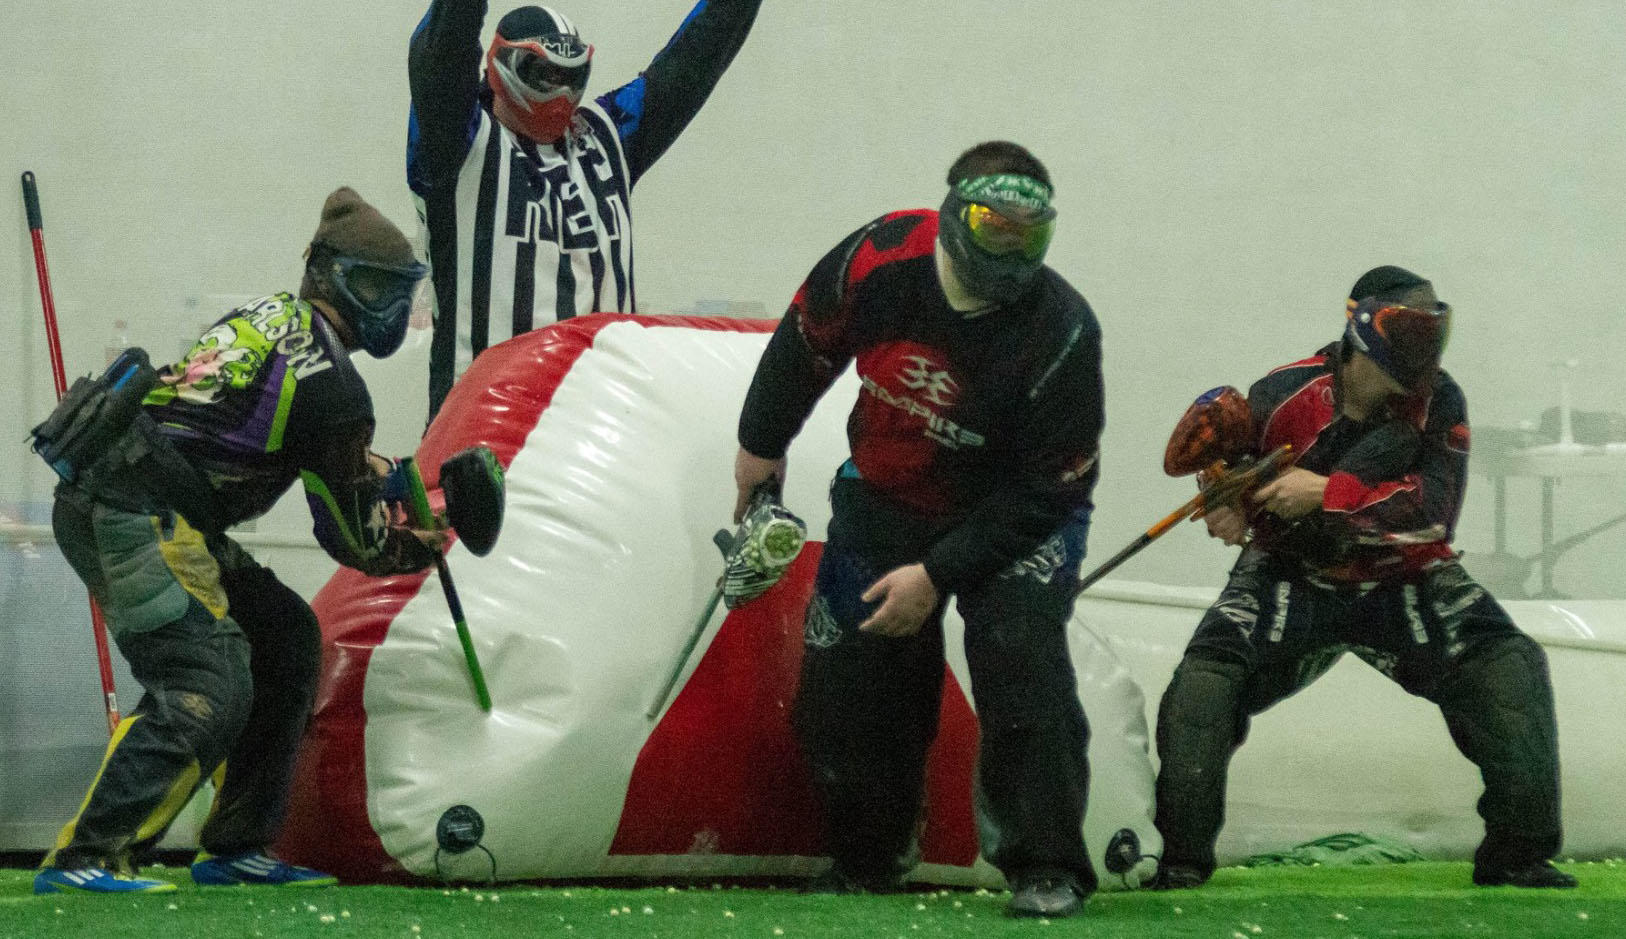 OHare Paintball Park image 3